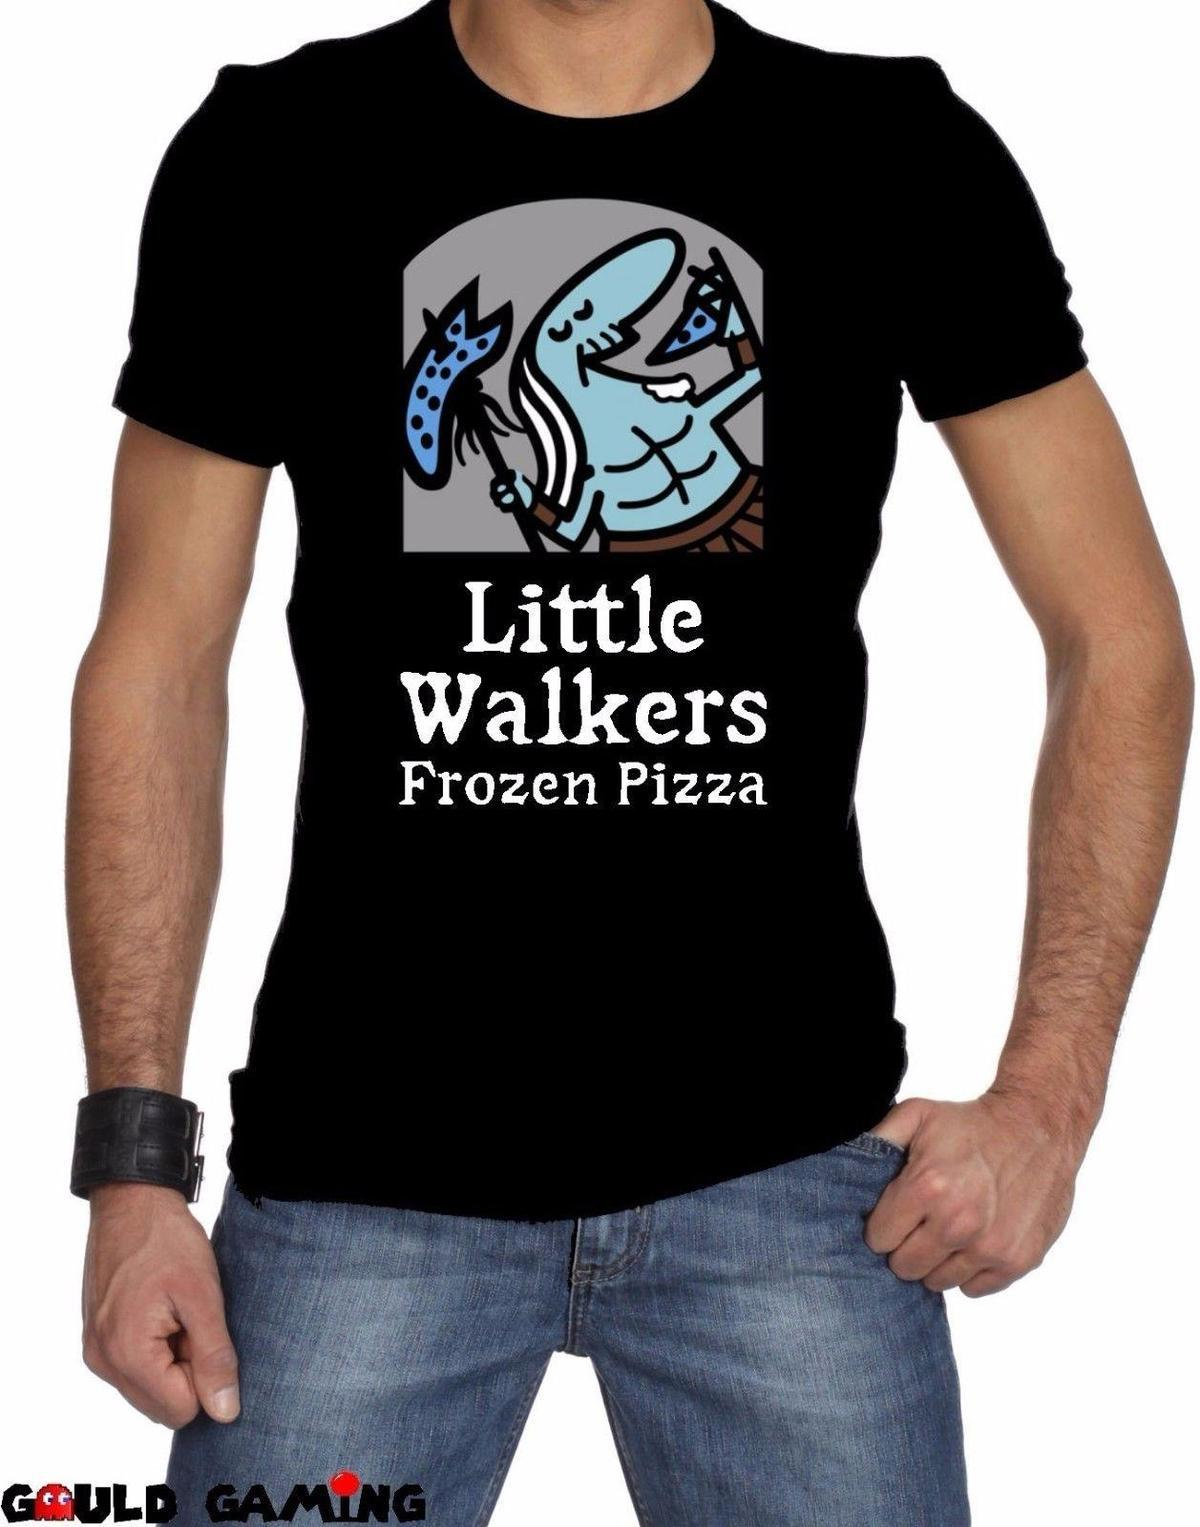 Game of Thrones Little White Walkers T-Shirt Unisex Funny Caesars Adult Size New